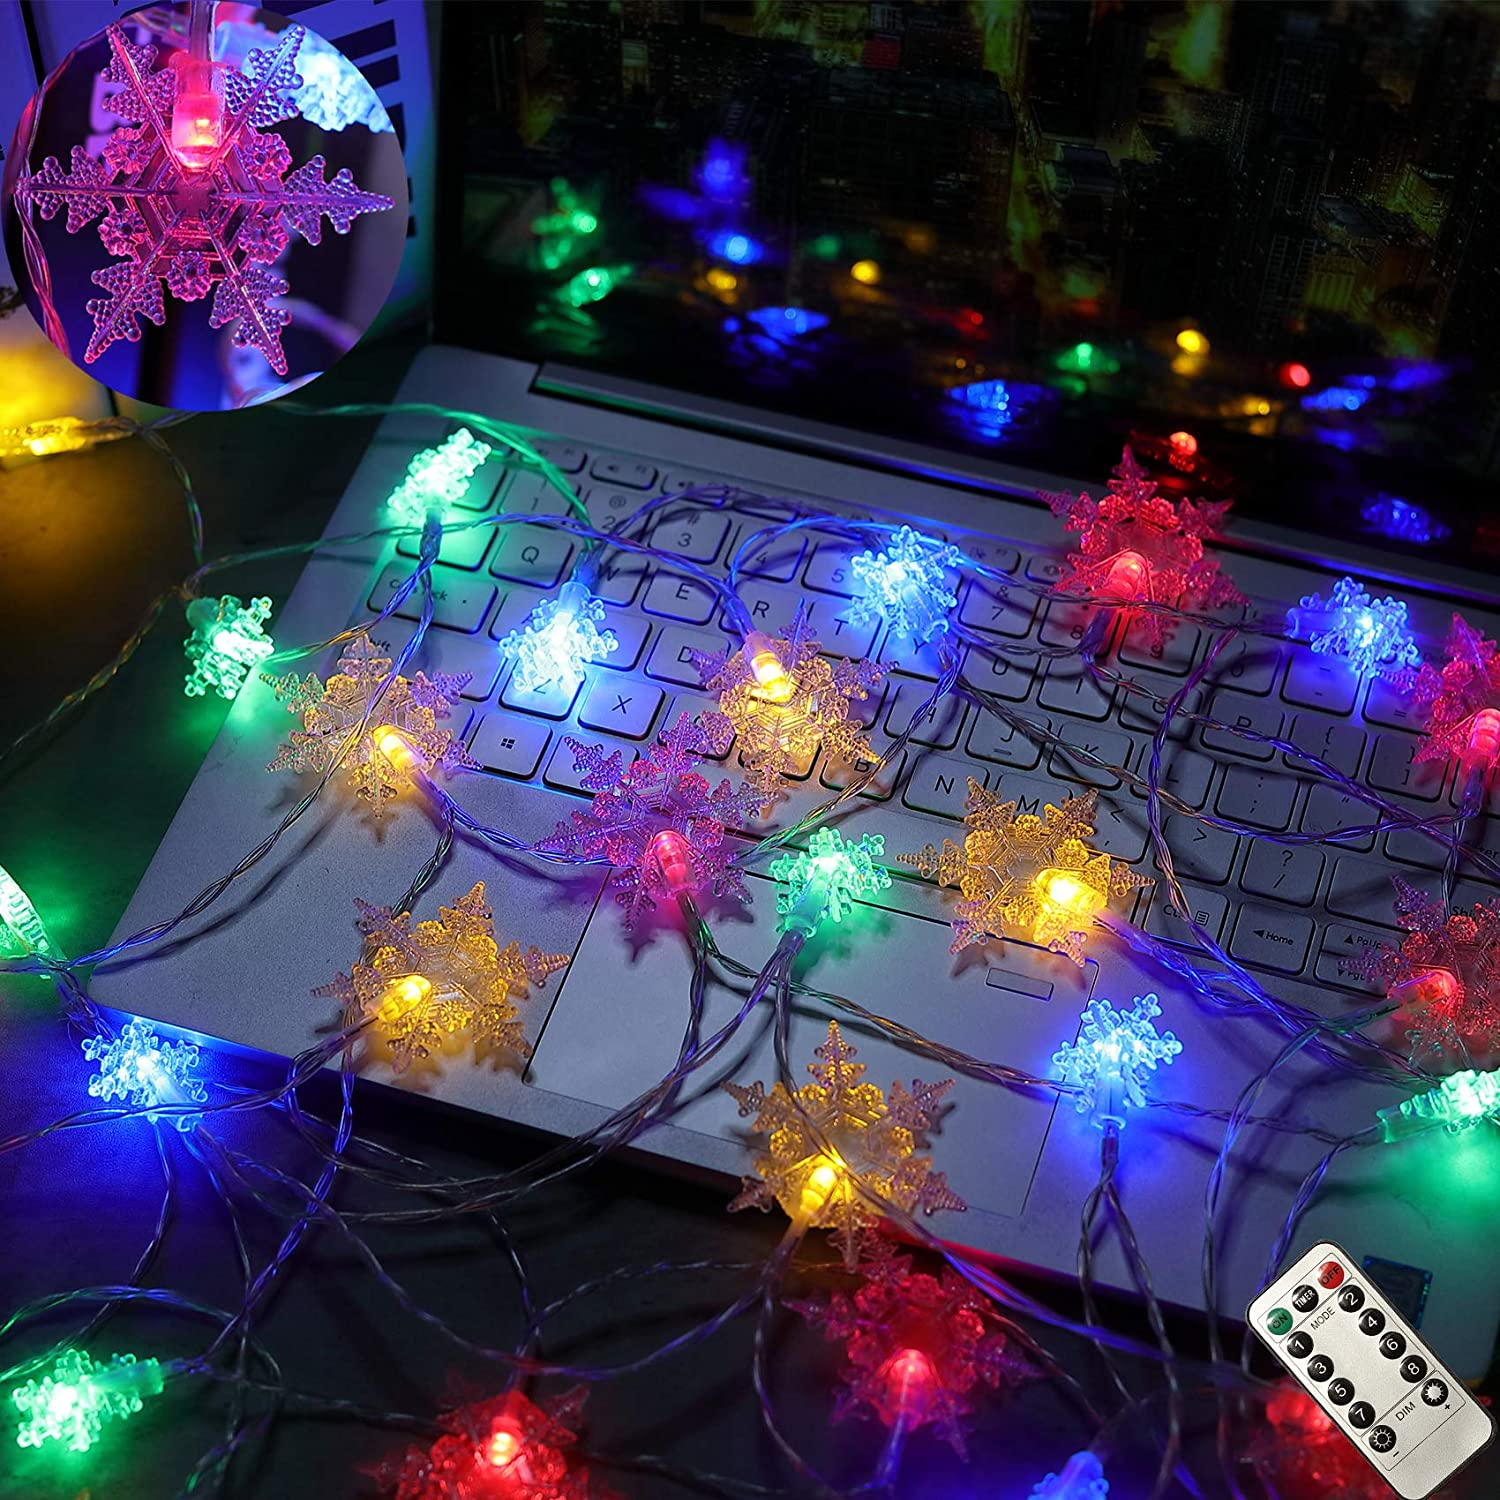 HOME RIGHT Christmas String Lights, 20Ft 40 LED Snowflake Decorative Waterproof Remote Control Battery Operated String Lights for Indoor Outdoor Garden Patio Yard Camping Halloween Holiday Multicolor